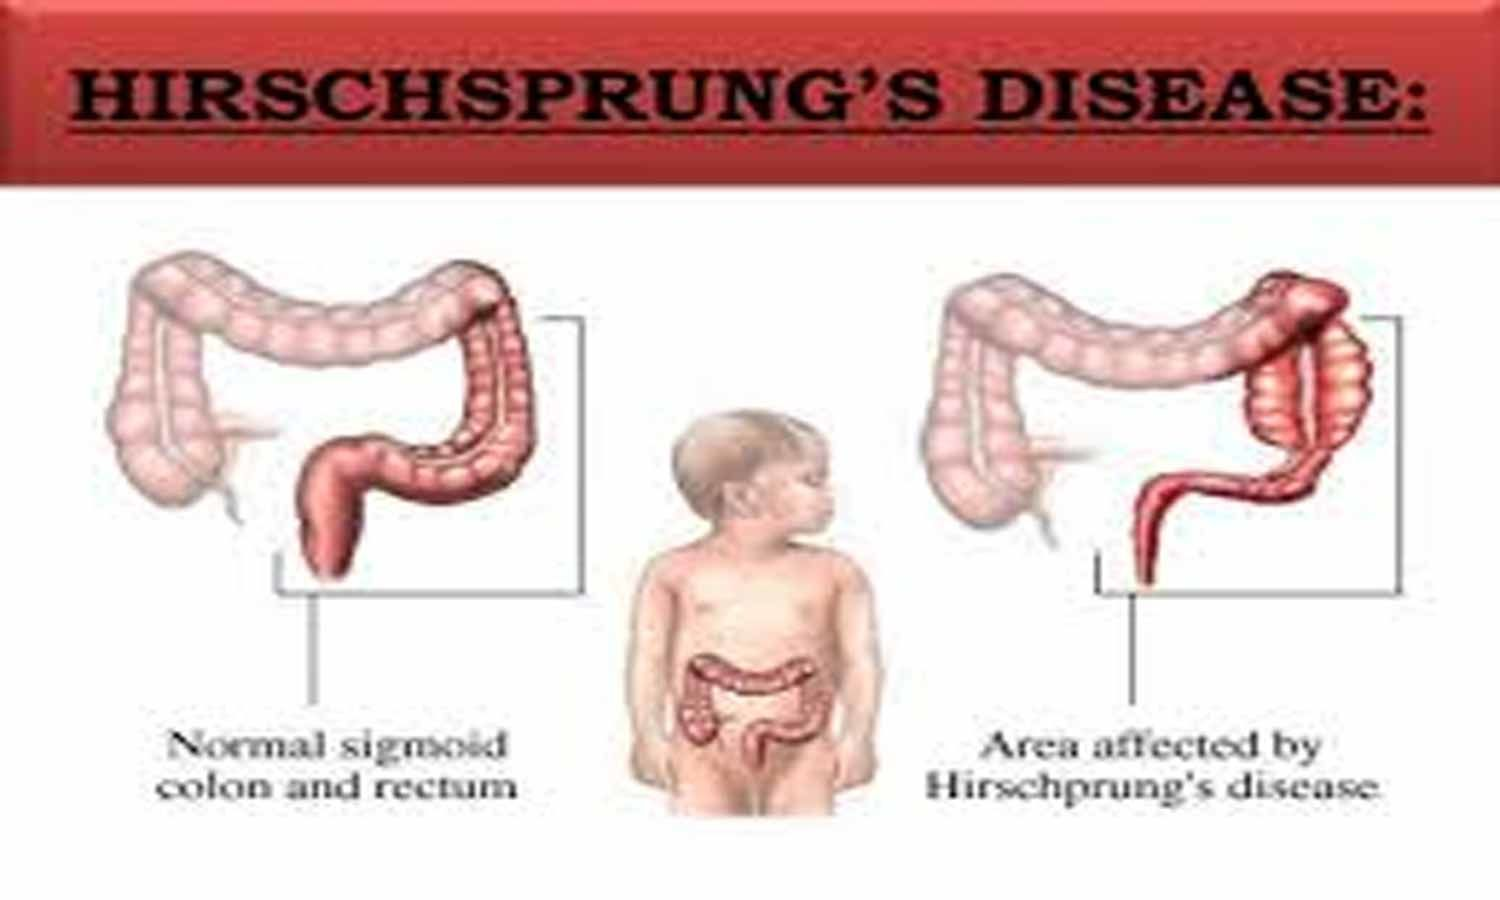 Preclinical study offers hope for patients of Hirschsprung